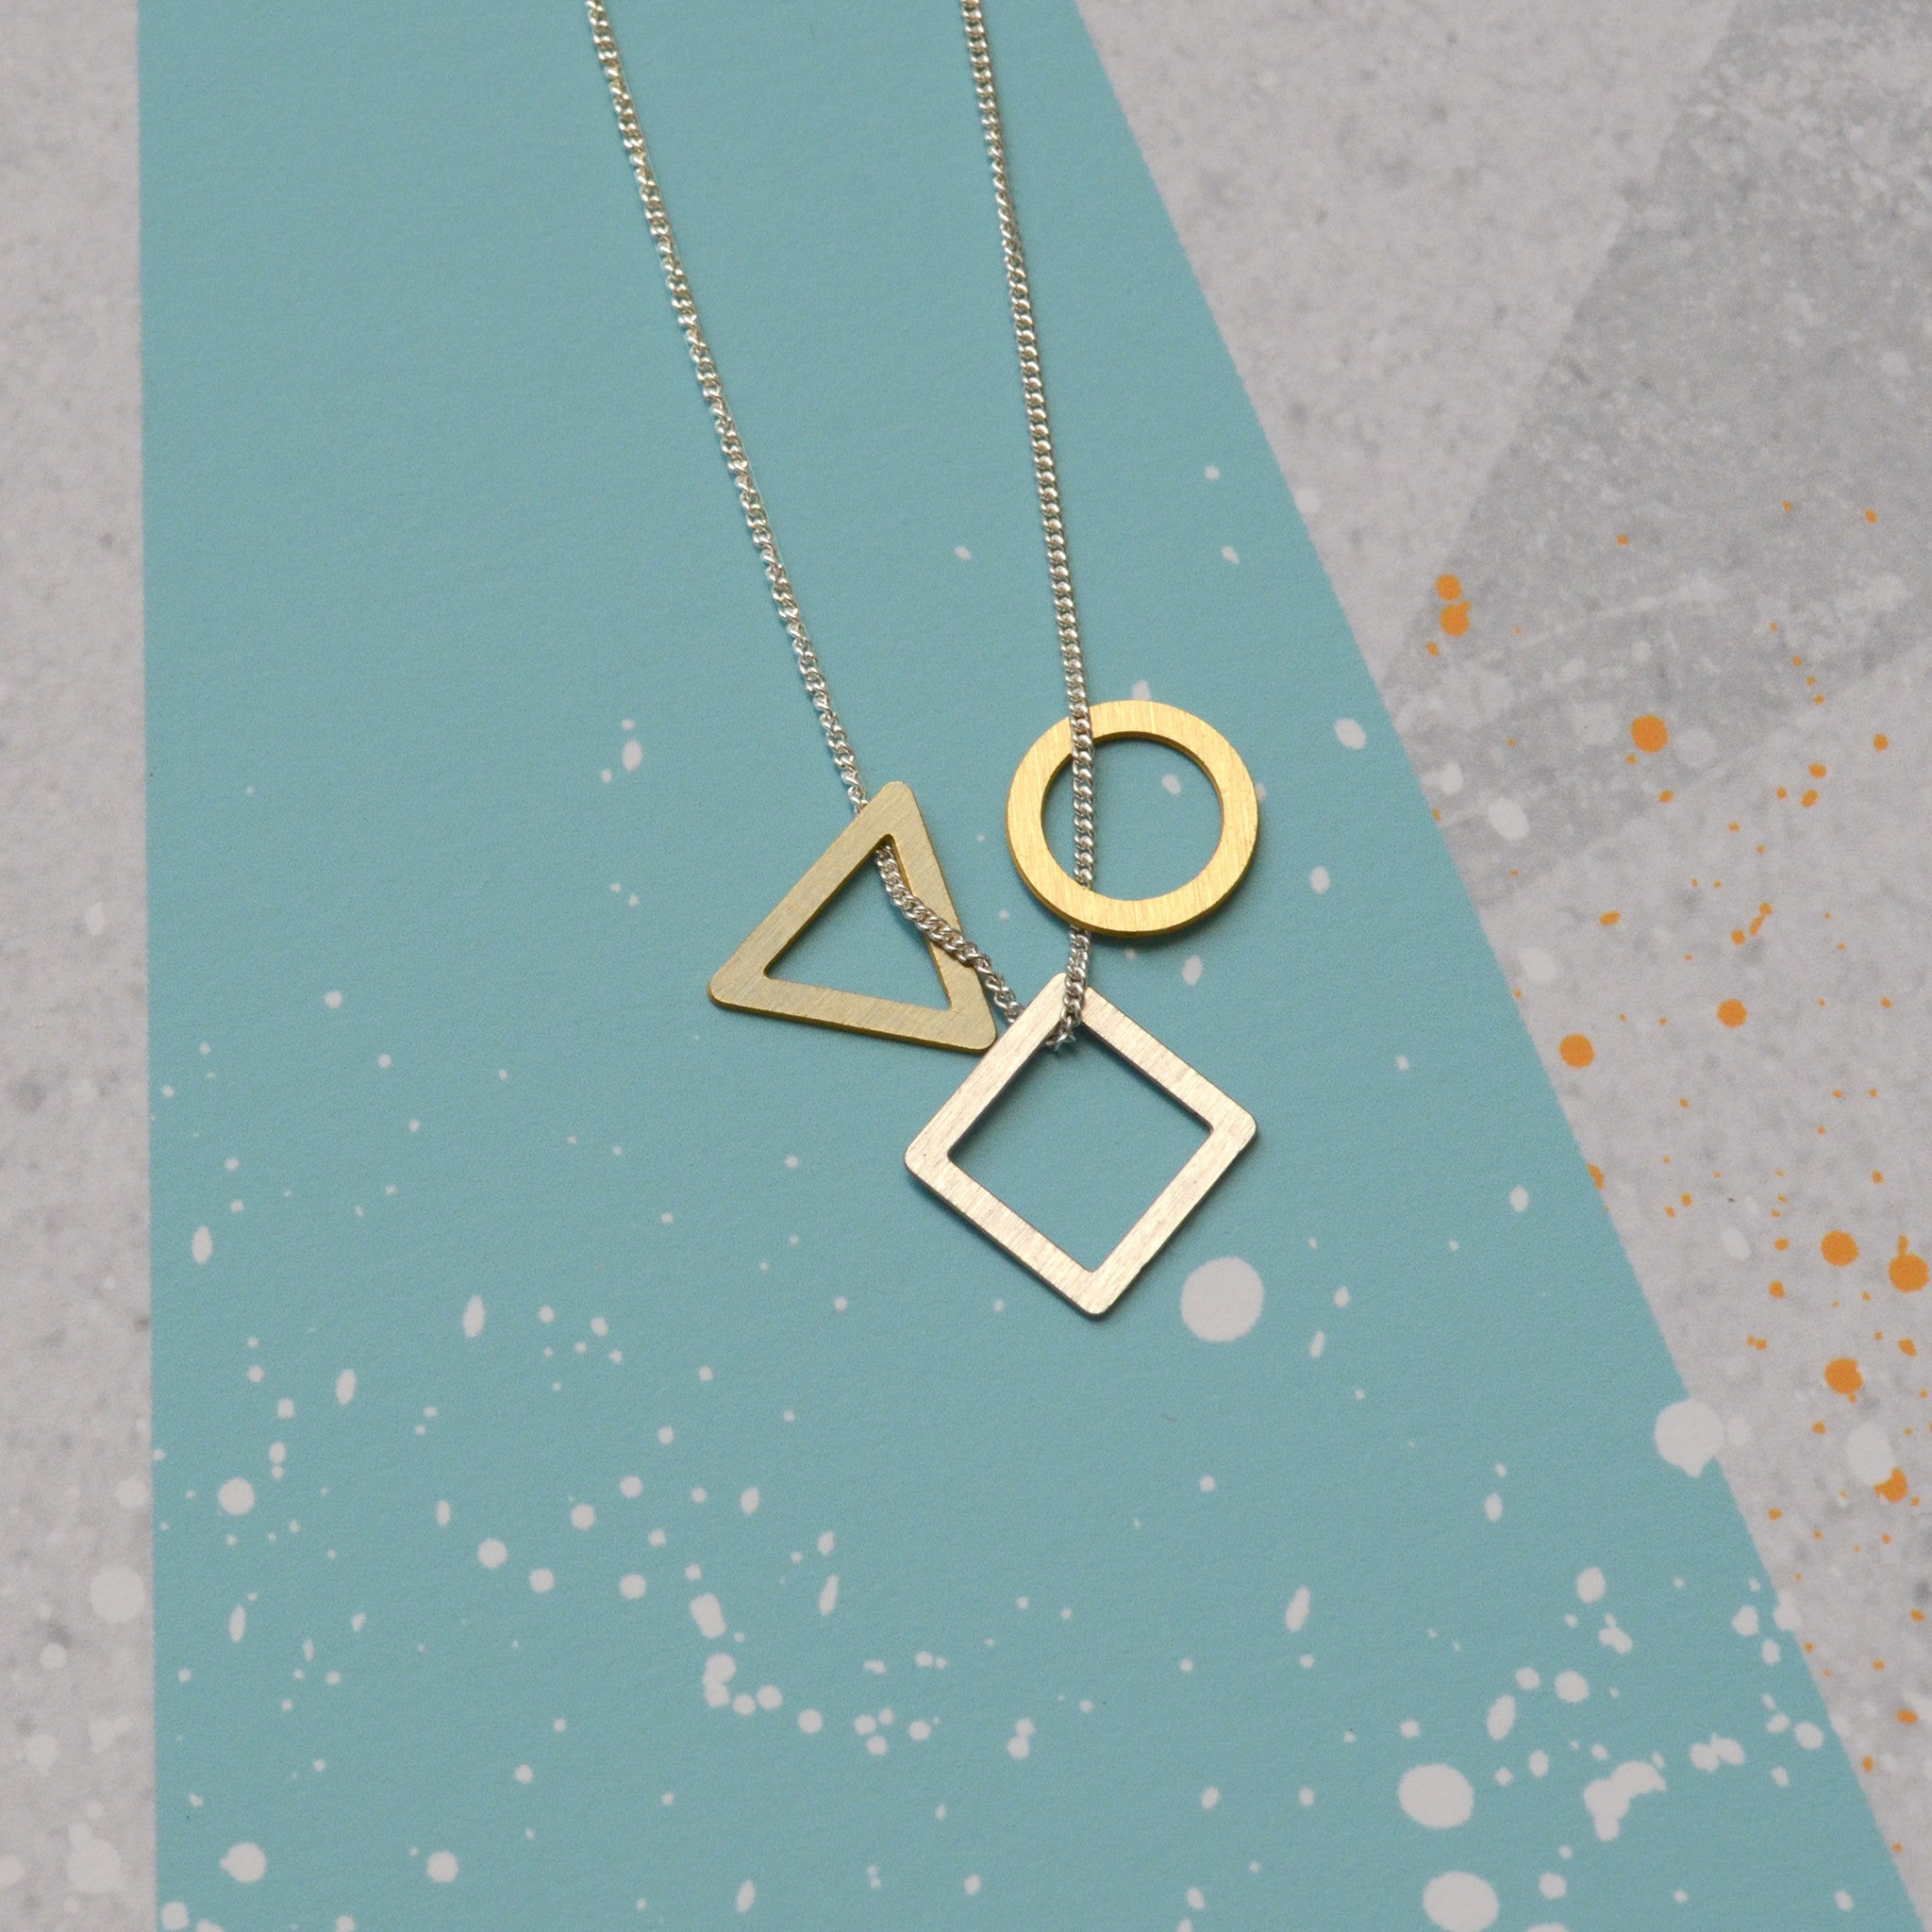 Mini geo necklace